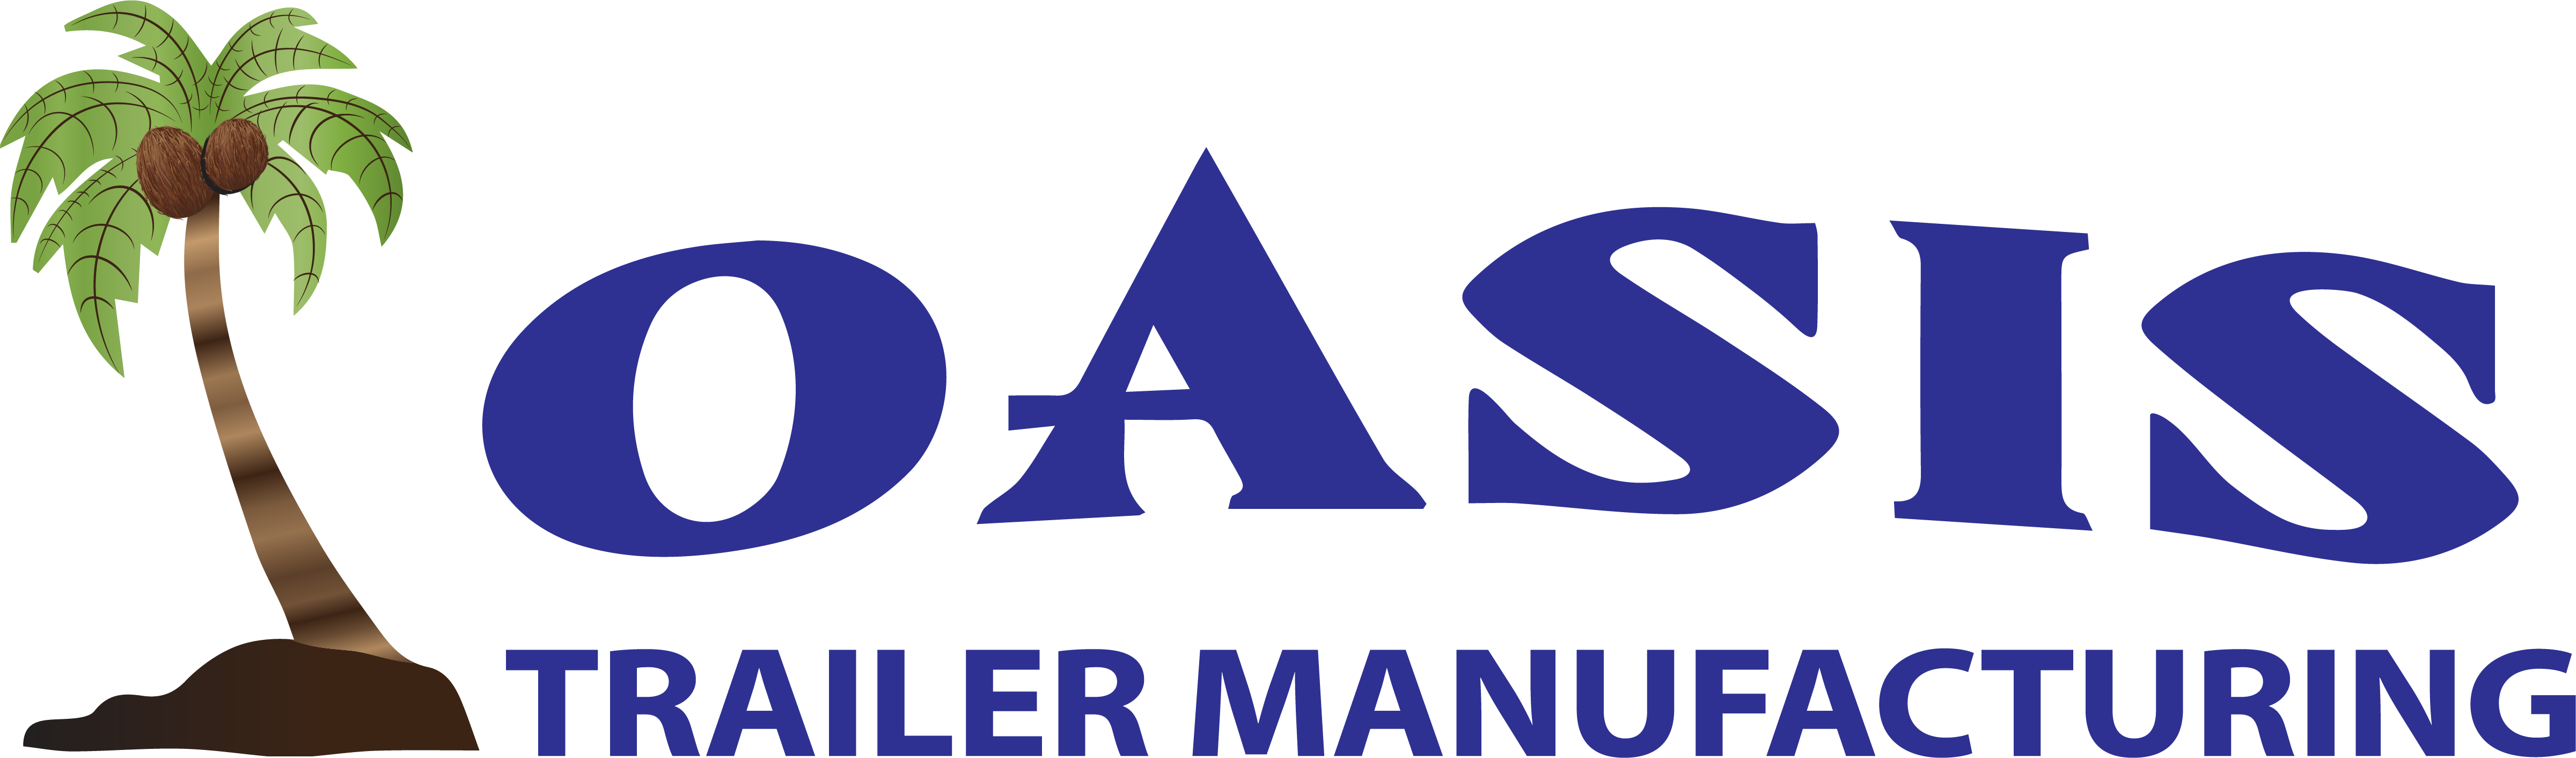 Oasis Trailer Mfg Ltd